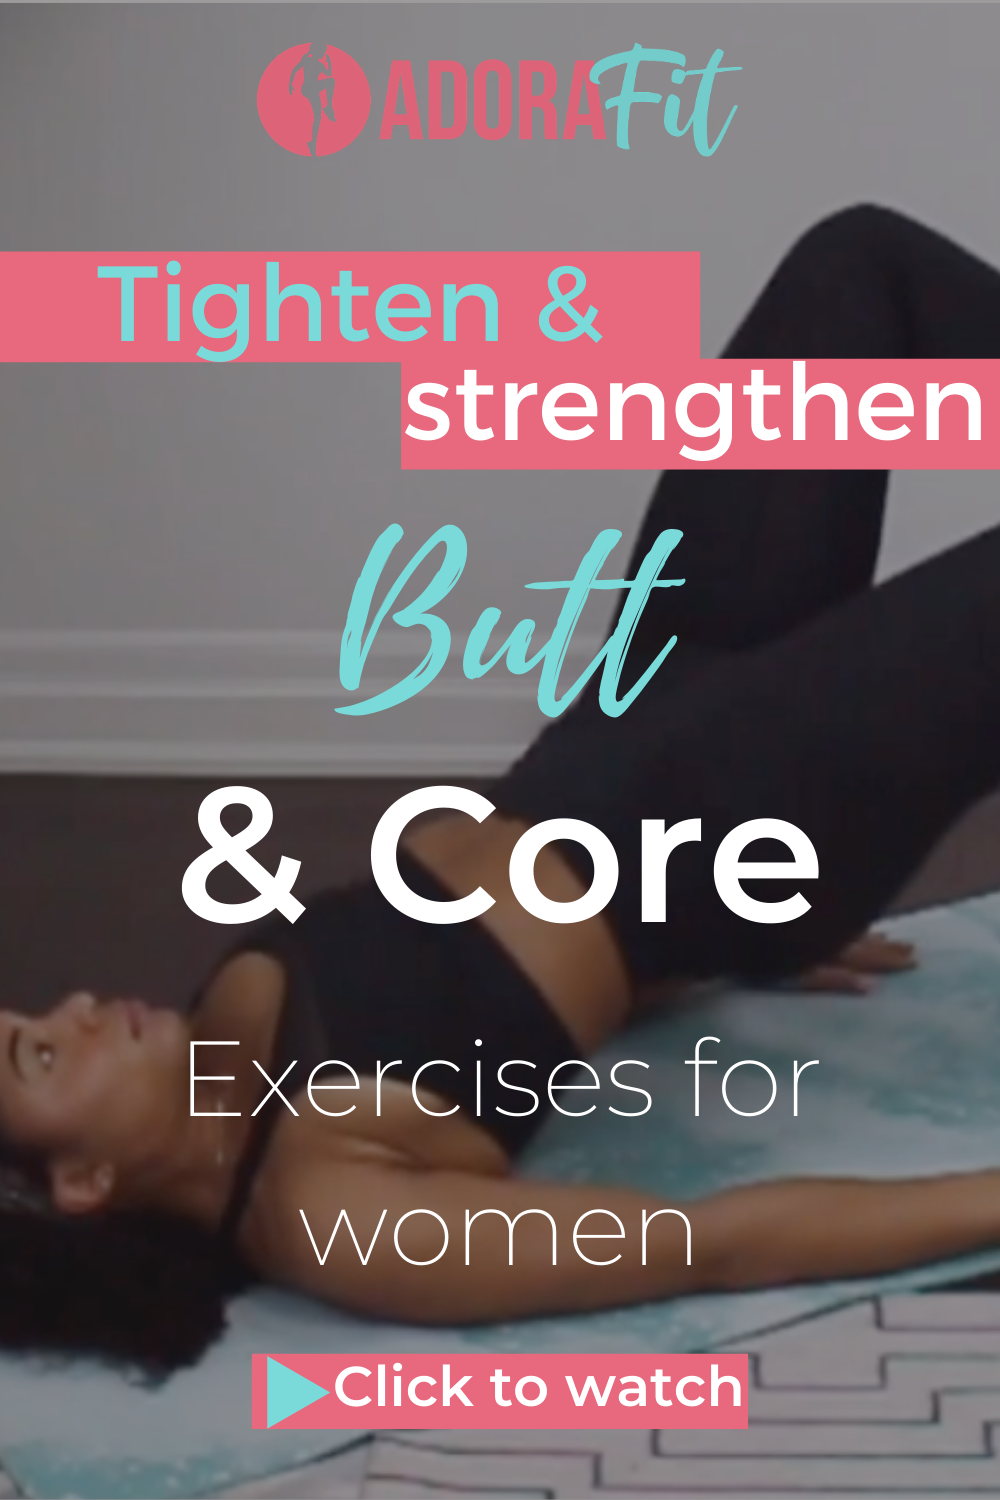 Booty + Core Workout At Home - Adorafit12